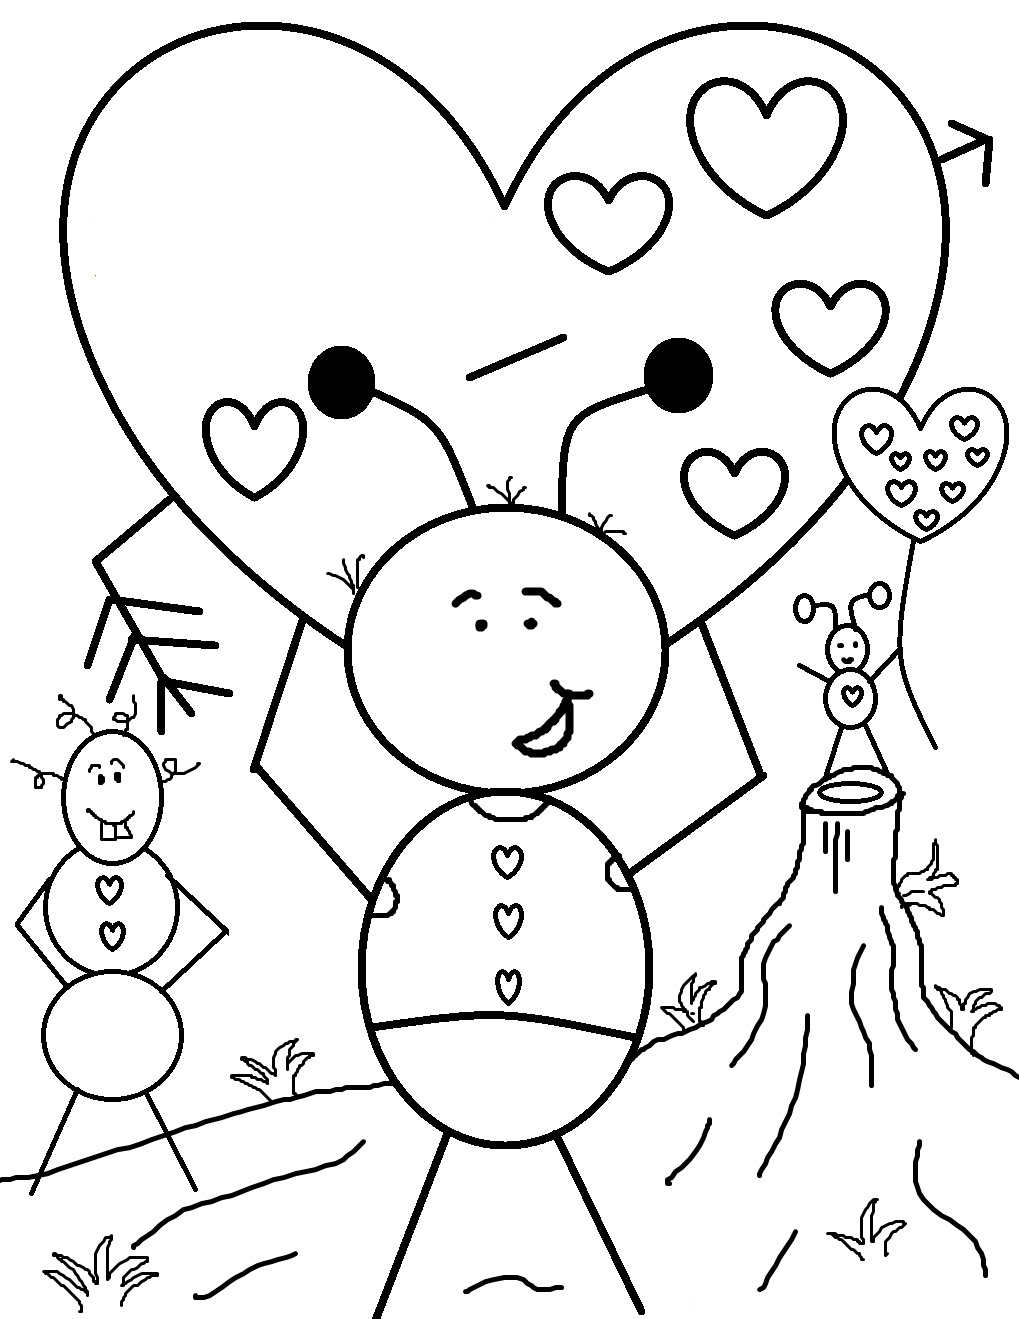 image relating to Valentines Printable Color Pages named Totally free Printable Valentine Coloring Internet pages For Young children